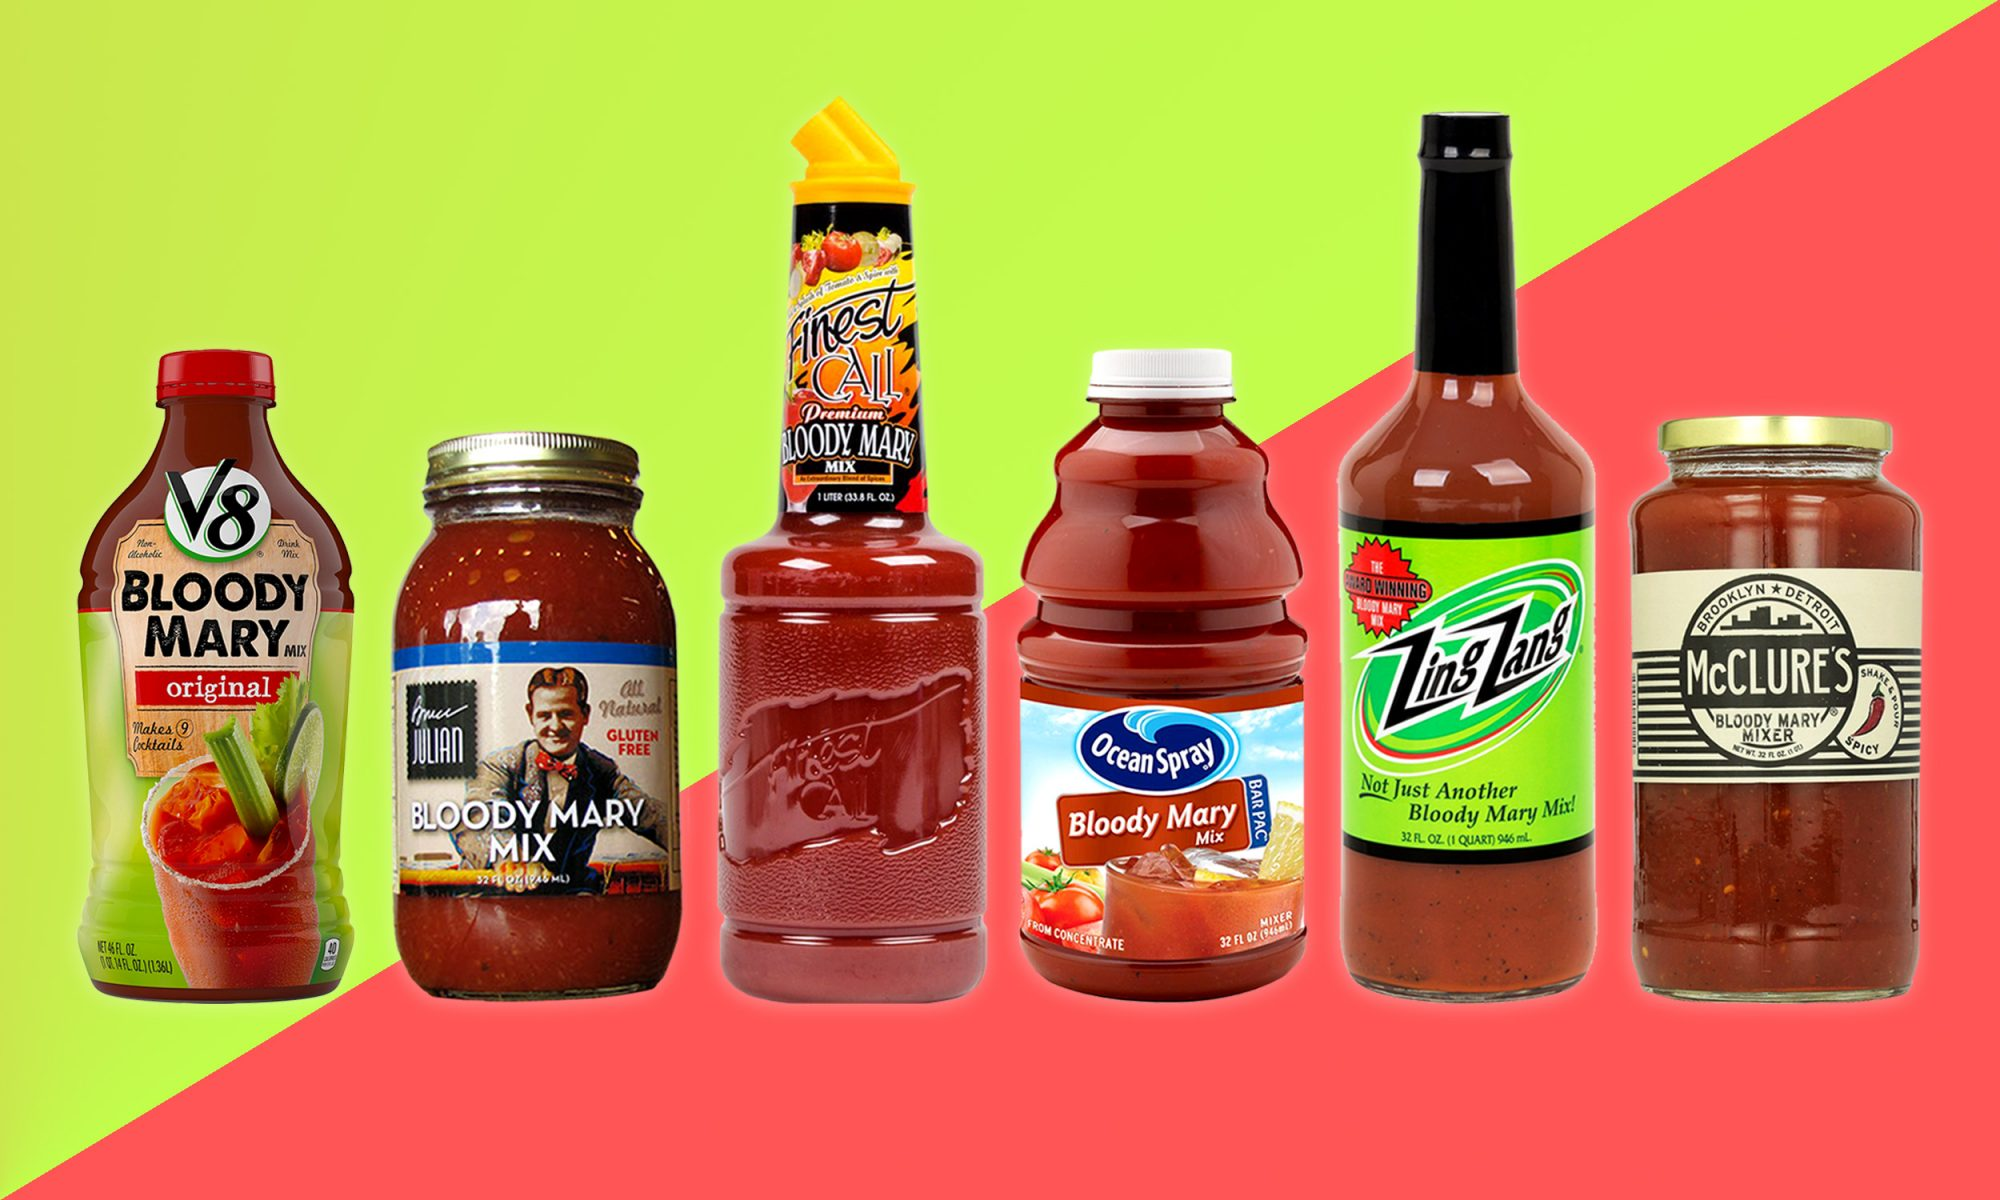 EC: I Tried 11 Store-Bought Bloody Mary Mixes and Here's the Best One